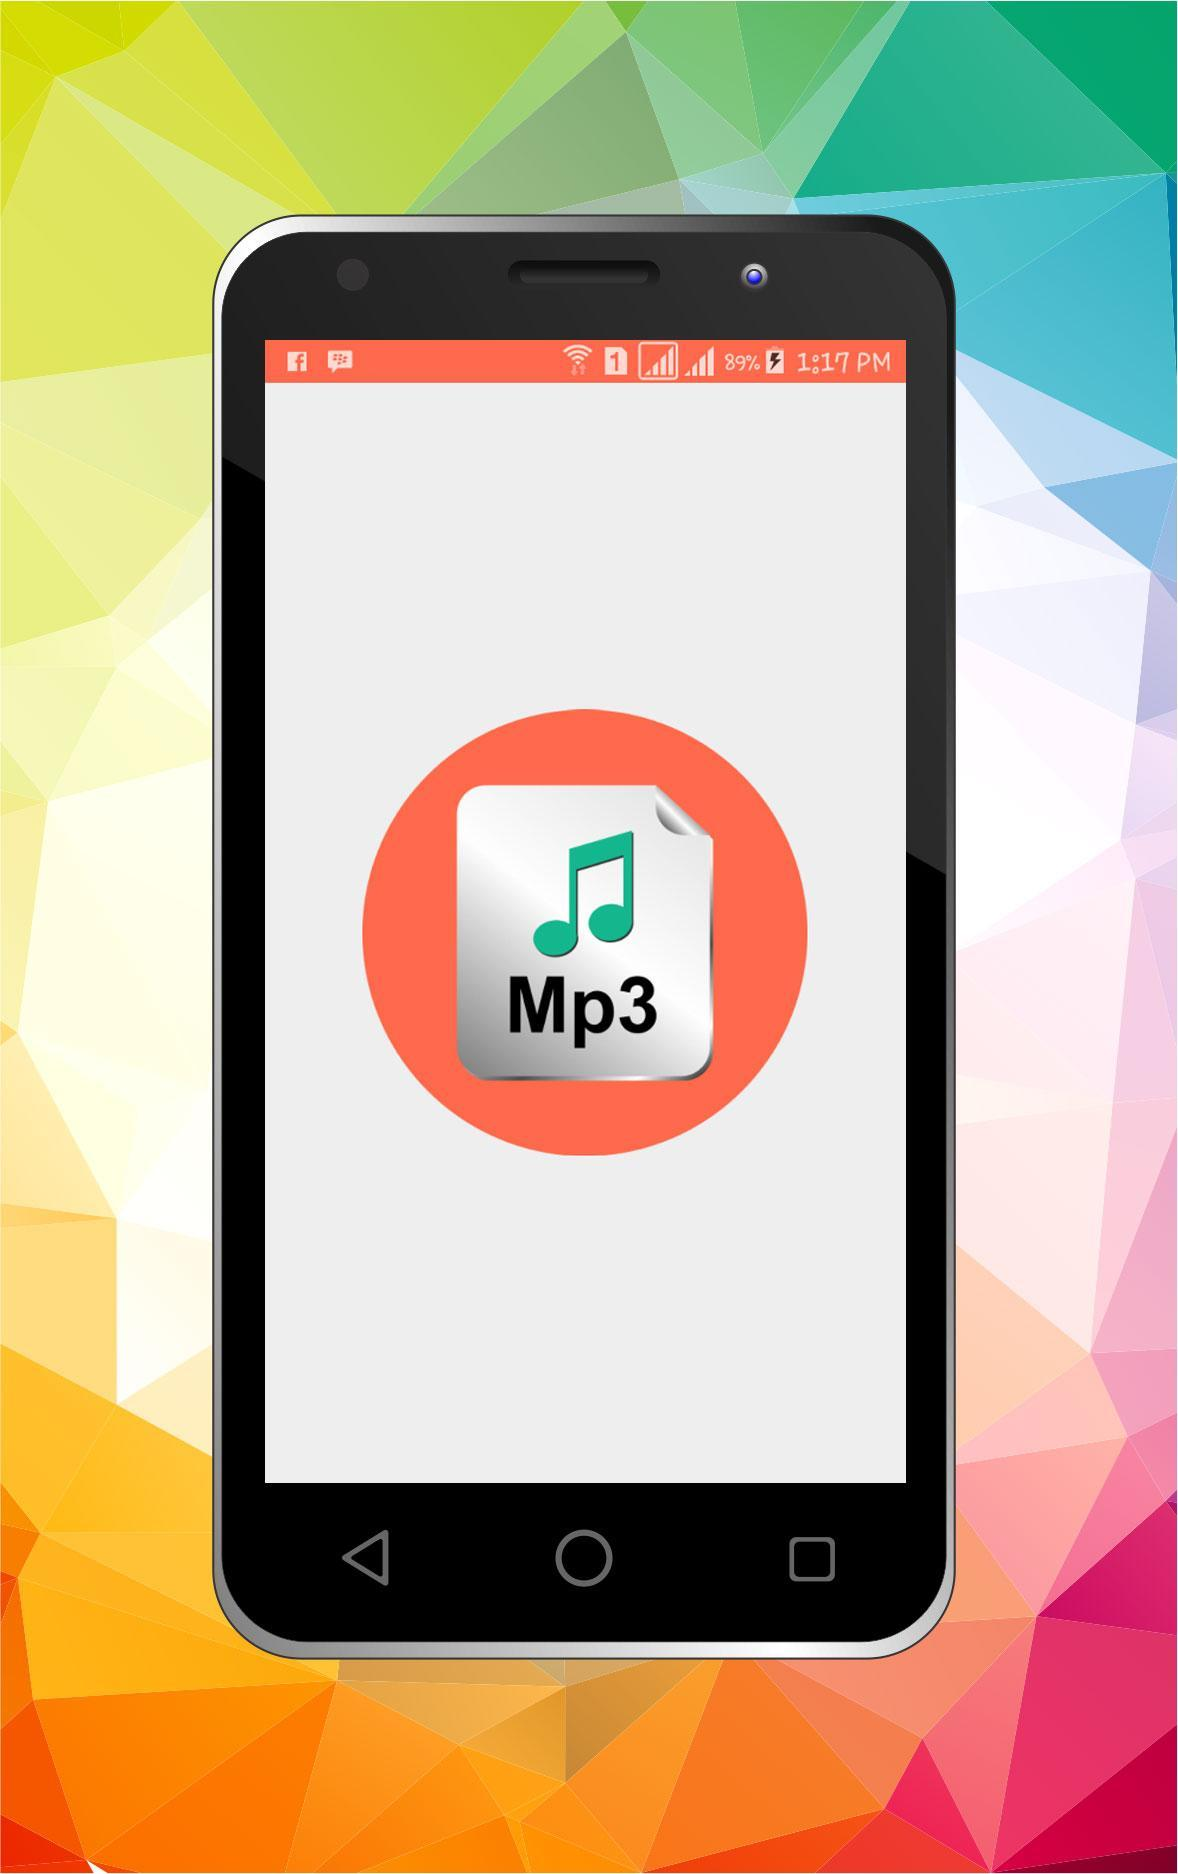 James Reid Nadine Lustre Songs for Android - APK Download